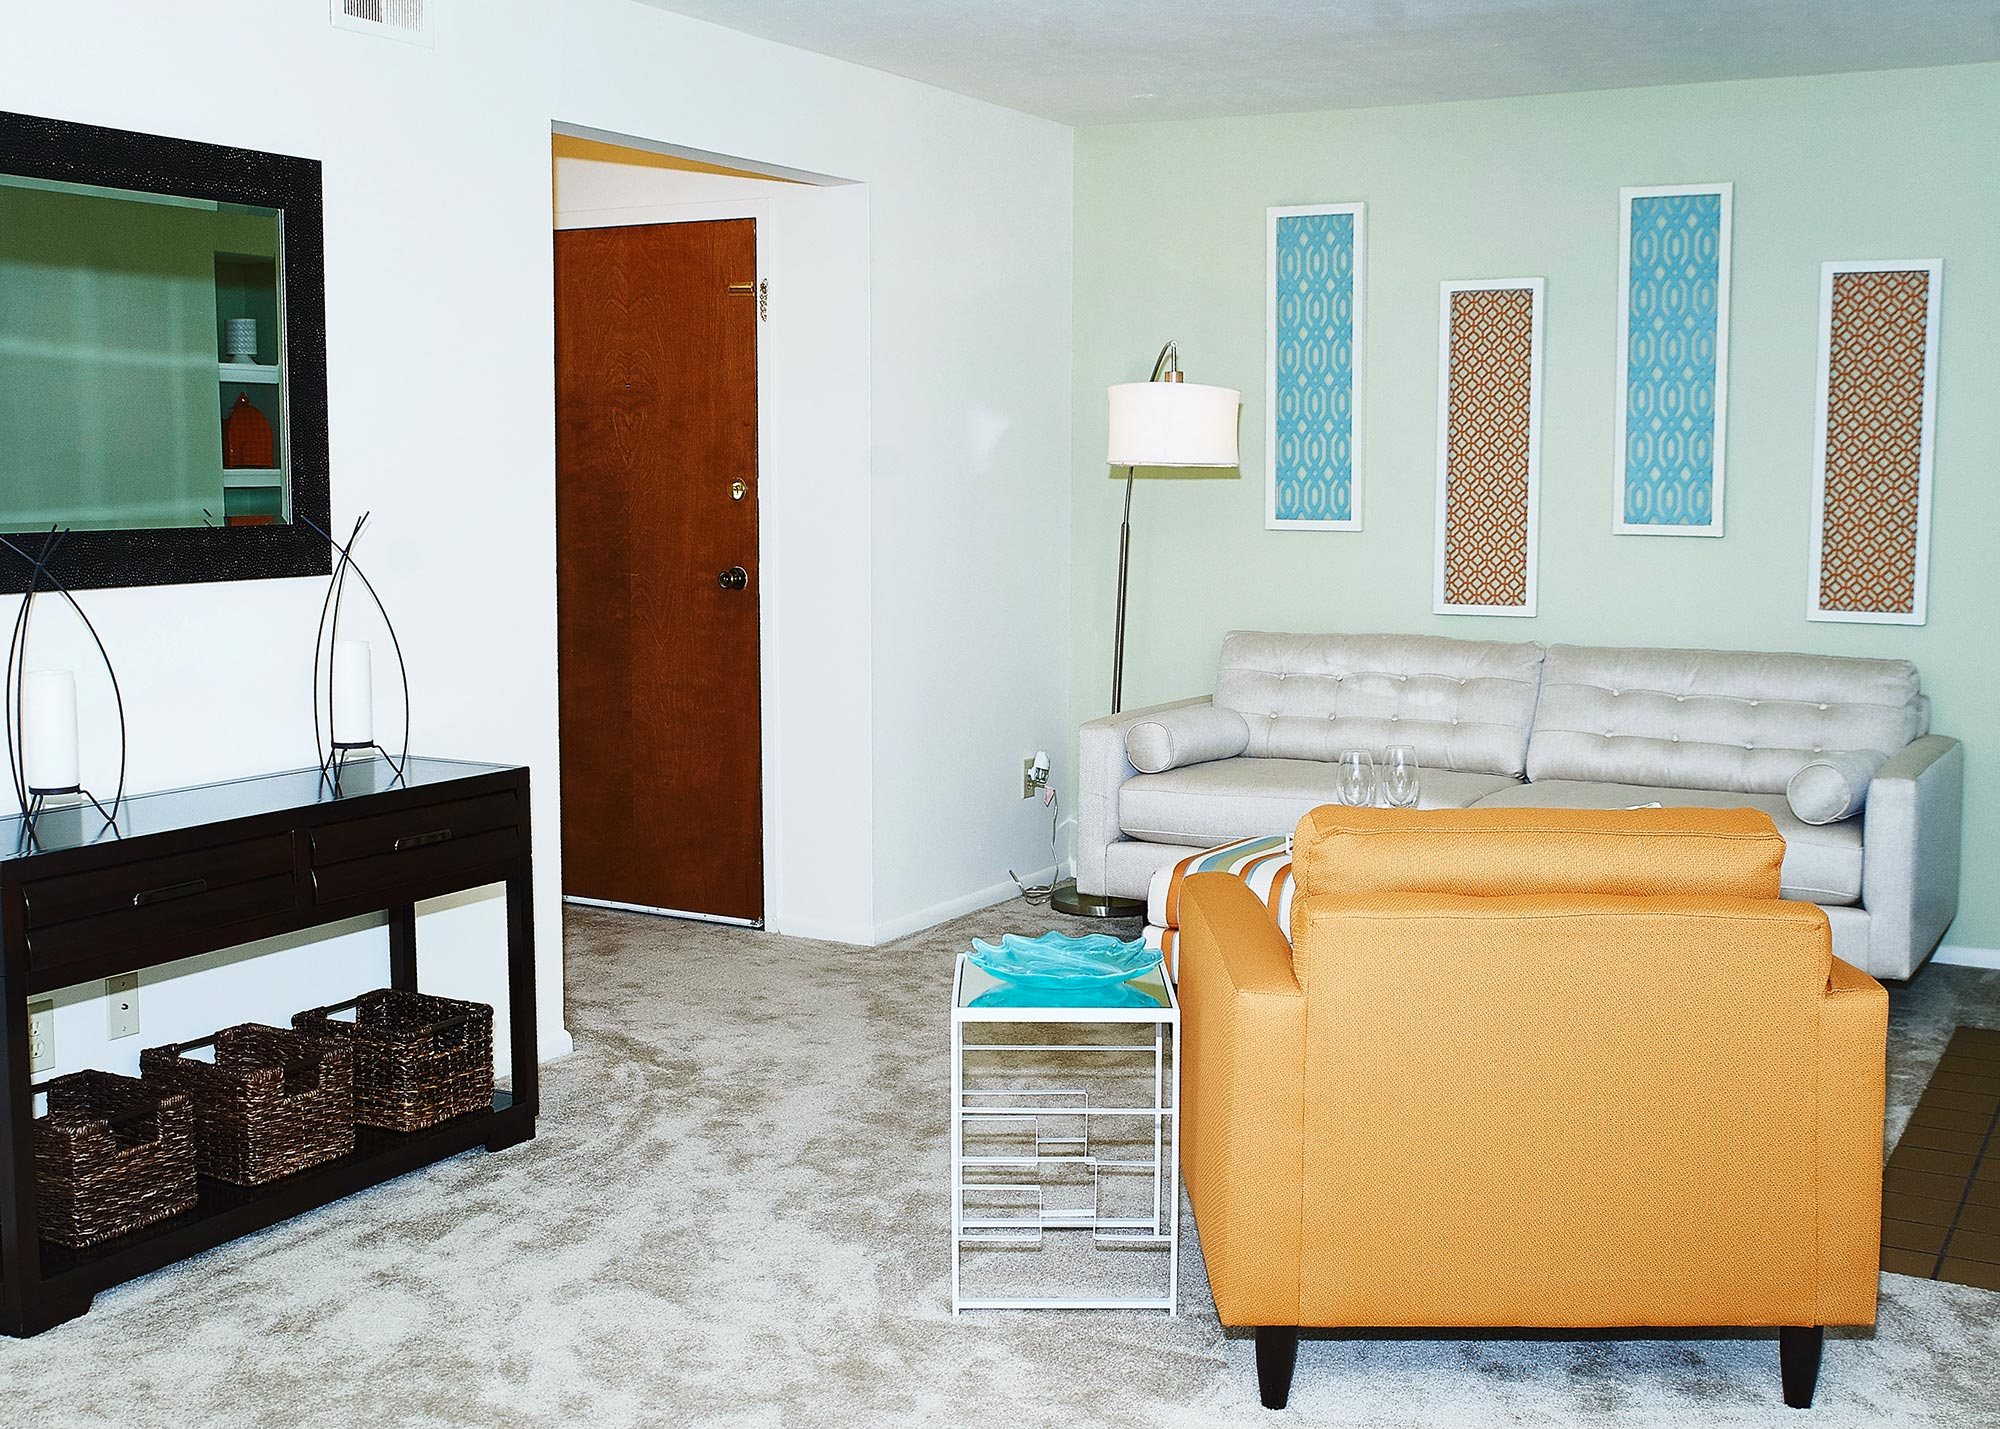 Woodbridge Ft. Wayne II - Escape the hustle of the city and enter the tranquility of Woodbridge Apartments, boasting beautifully landscaped ground, and active amenities